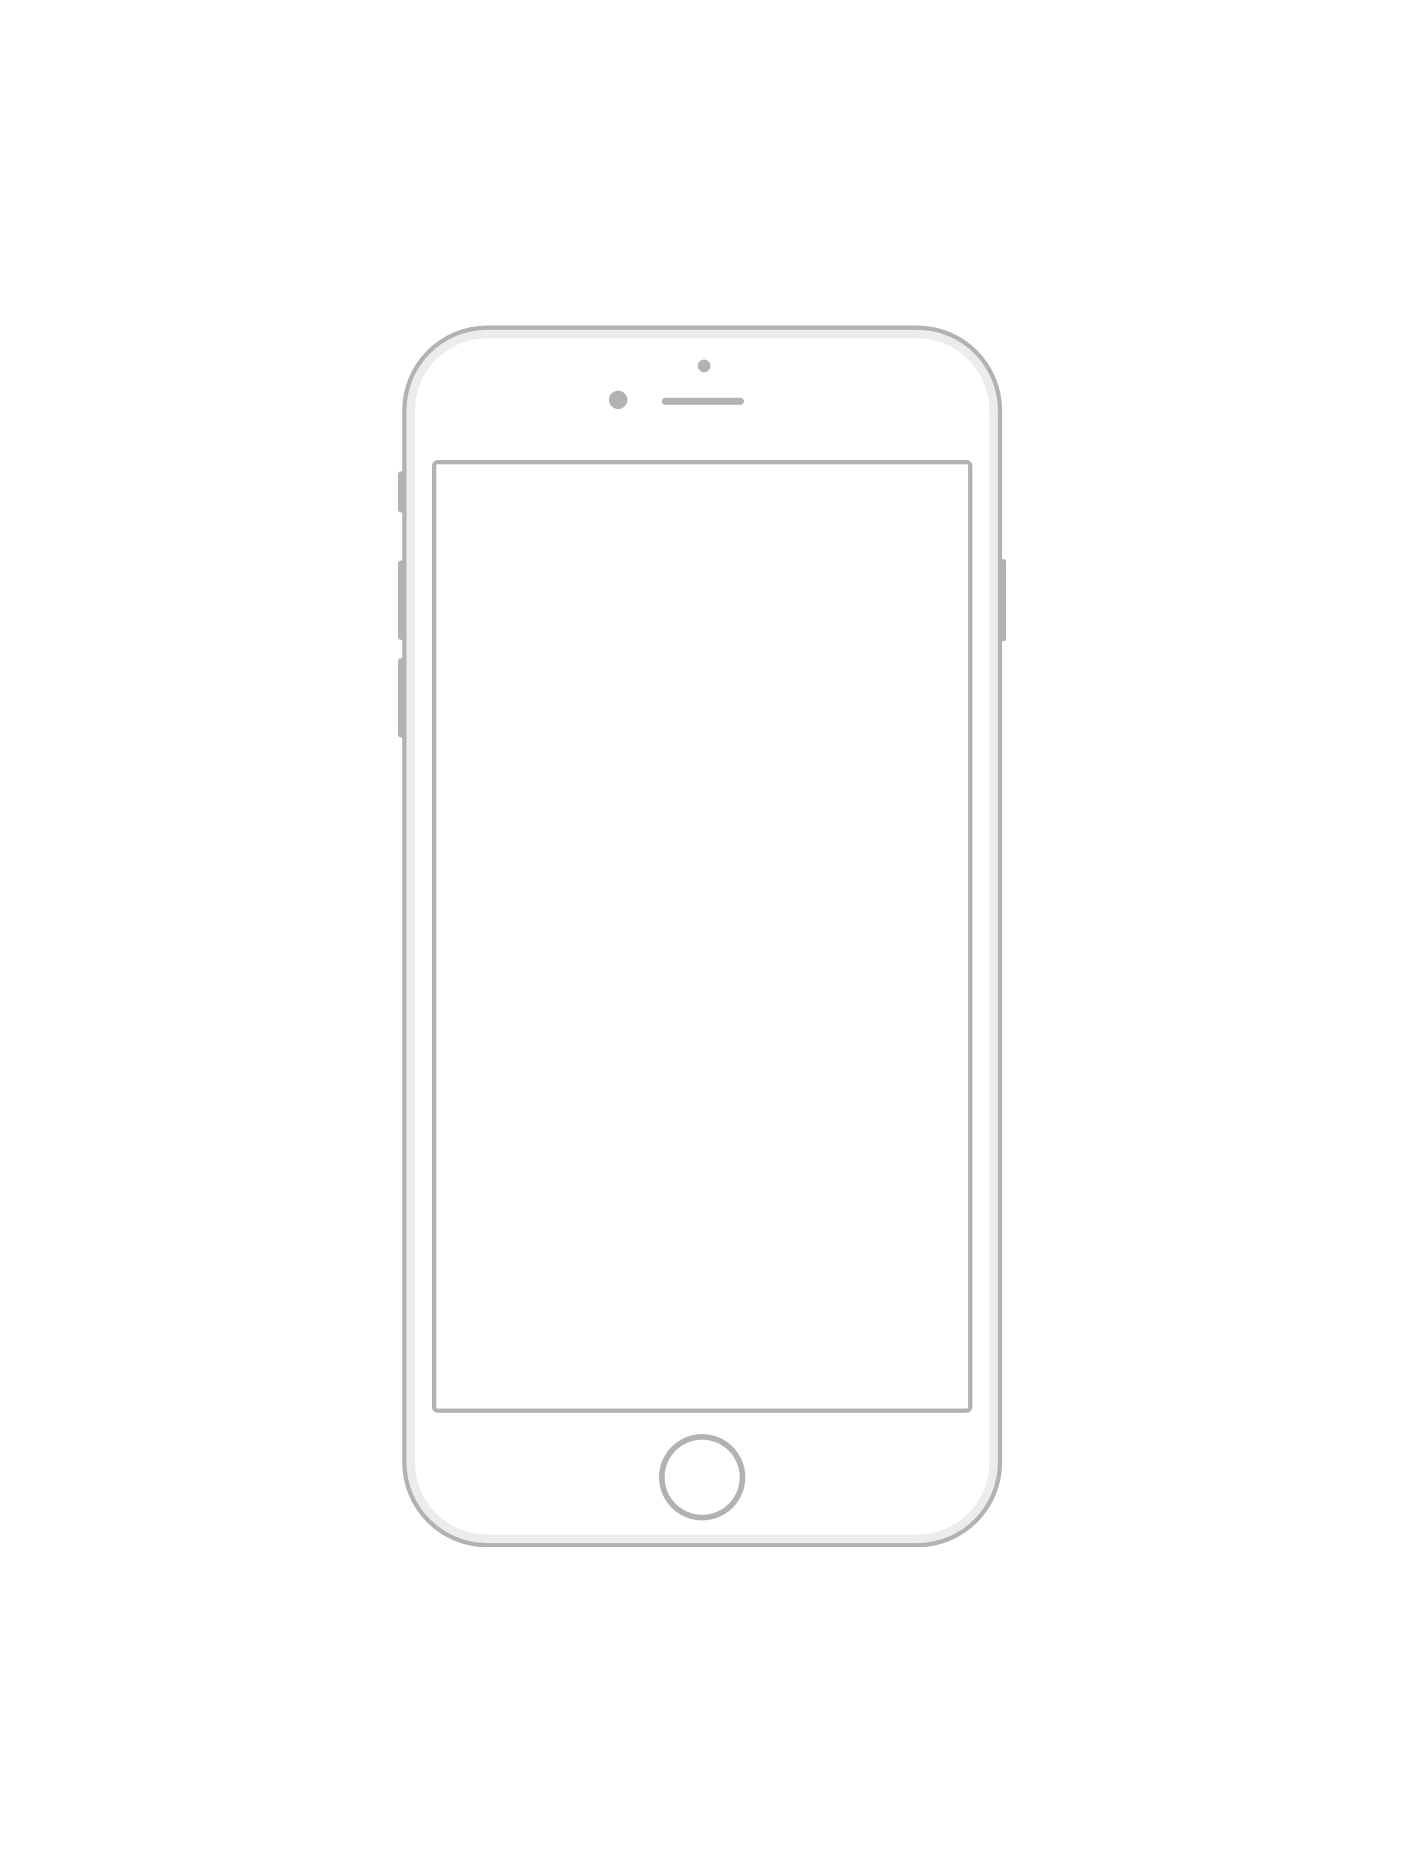 remarkable iphone templates